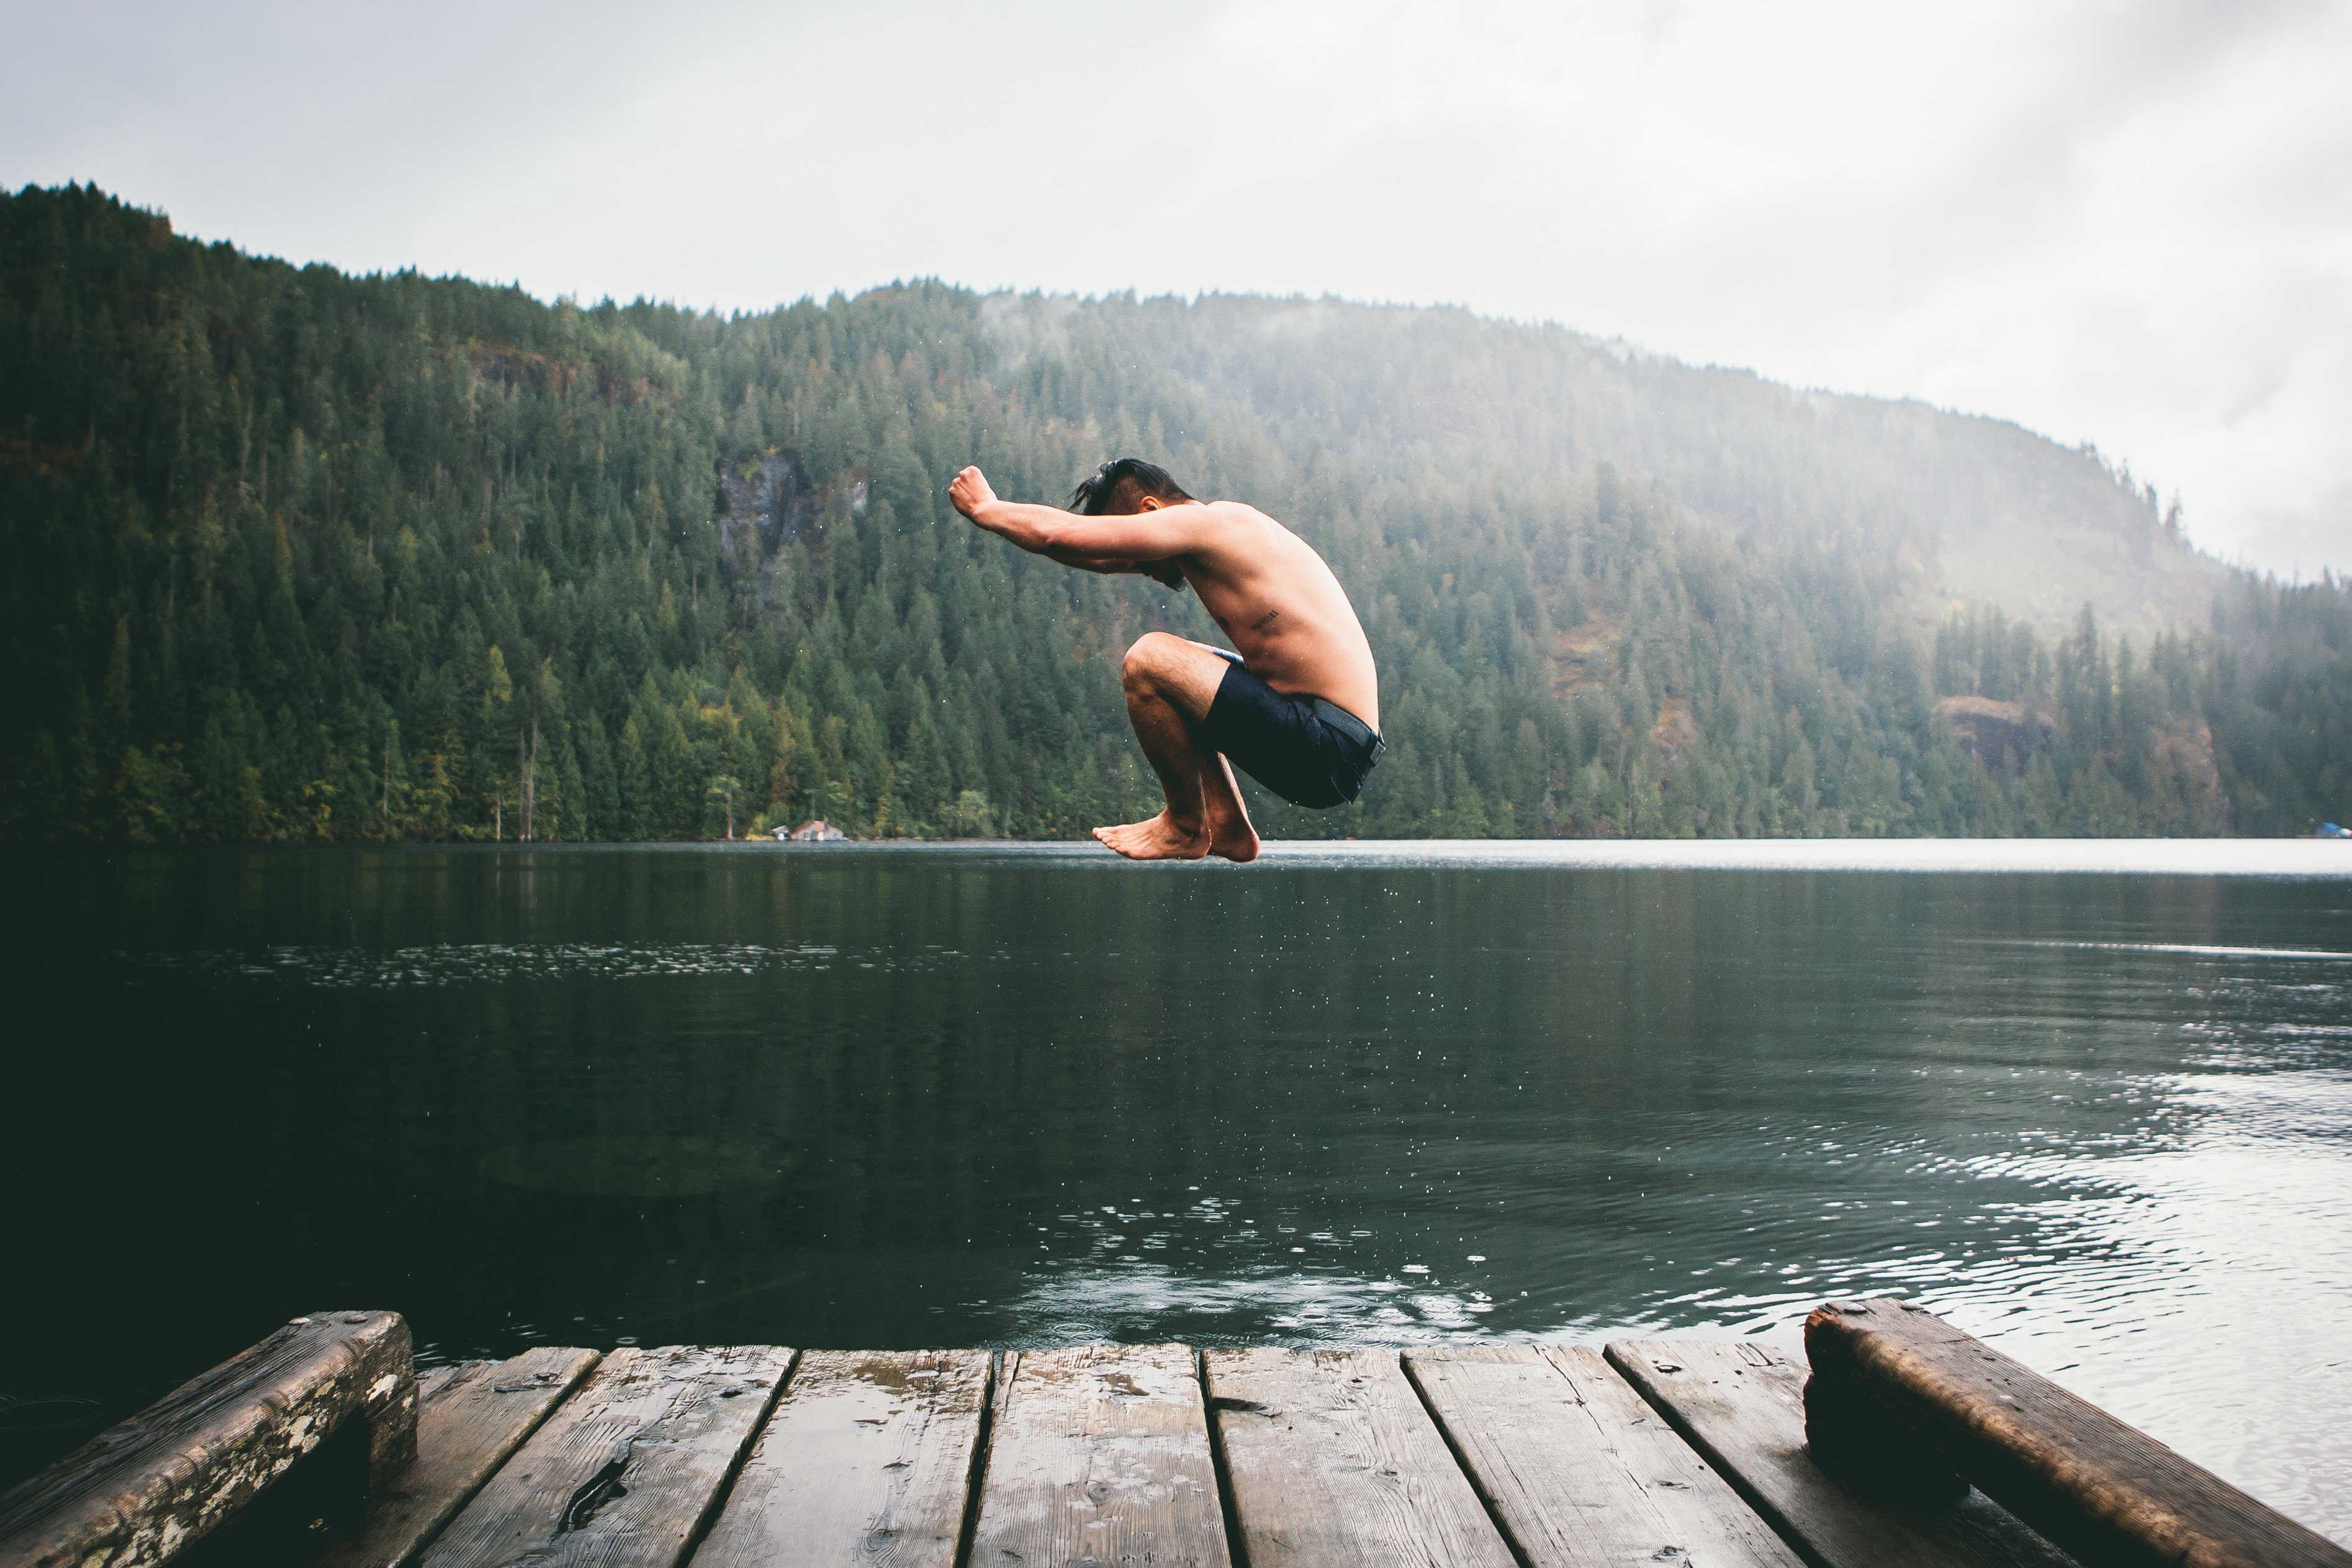 A man jumps into a lake surrounded by a forest